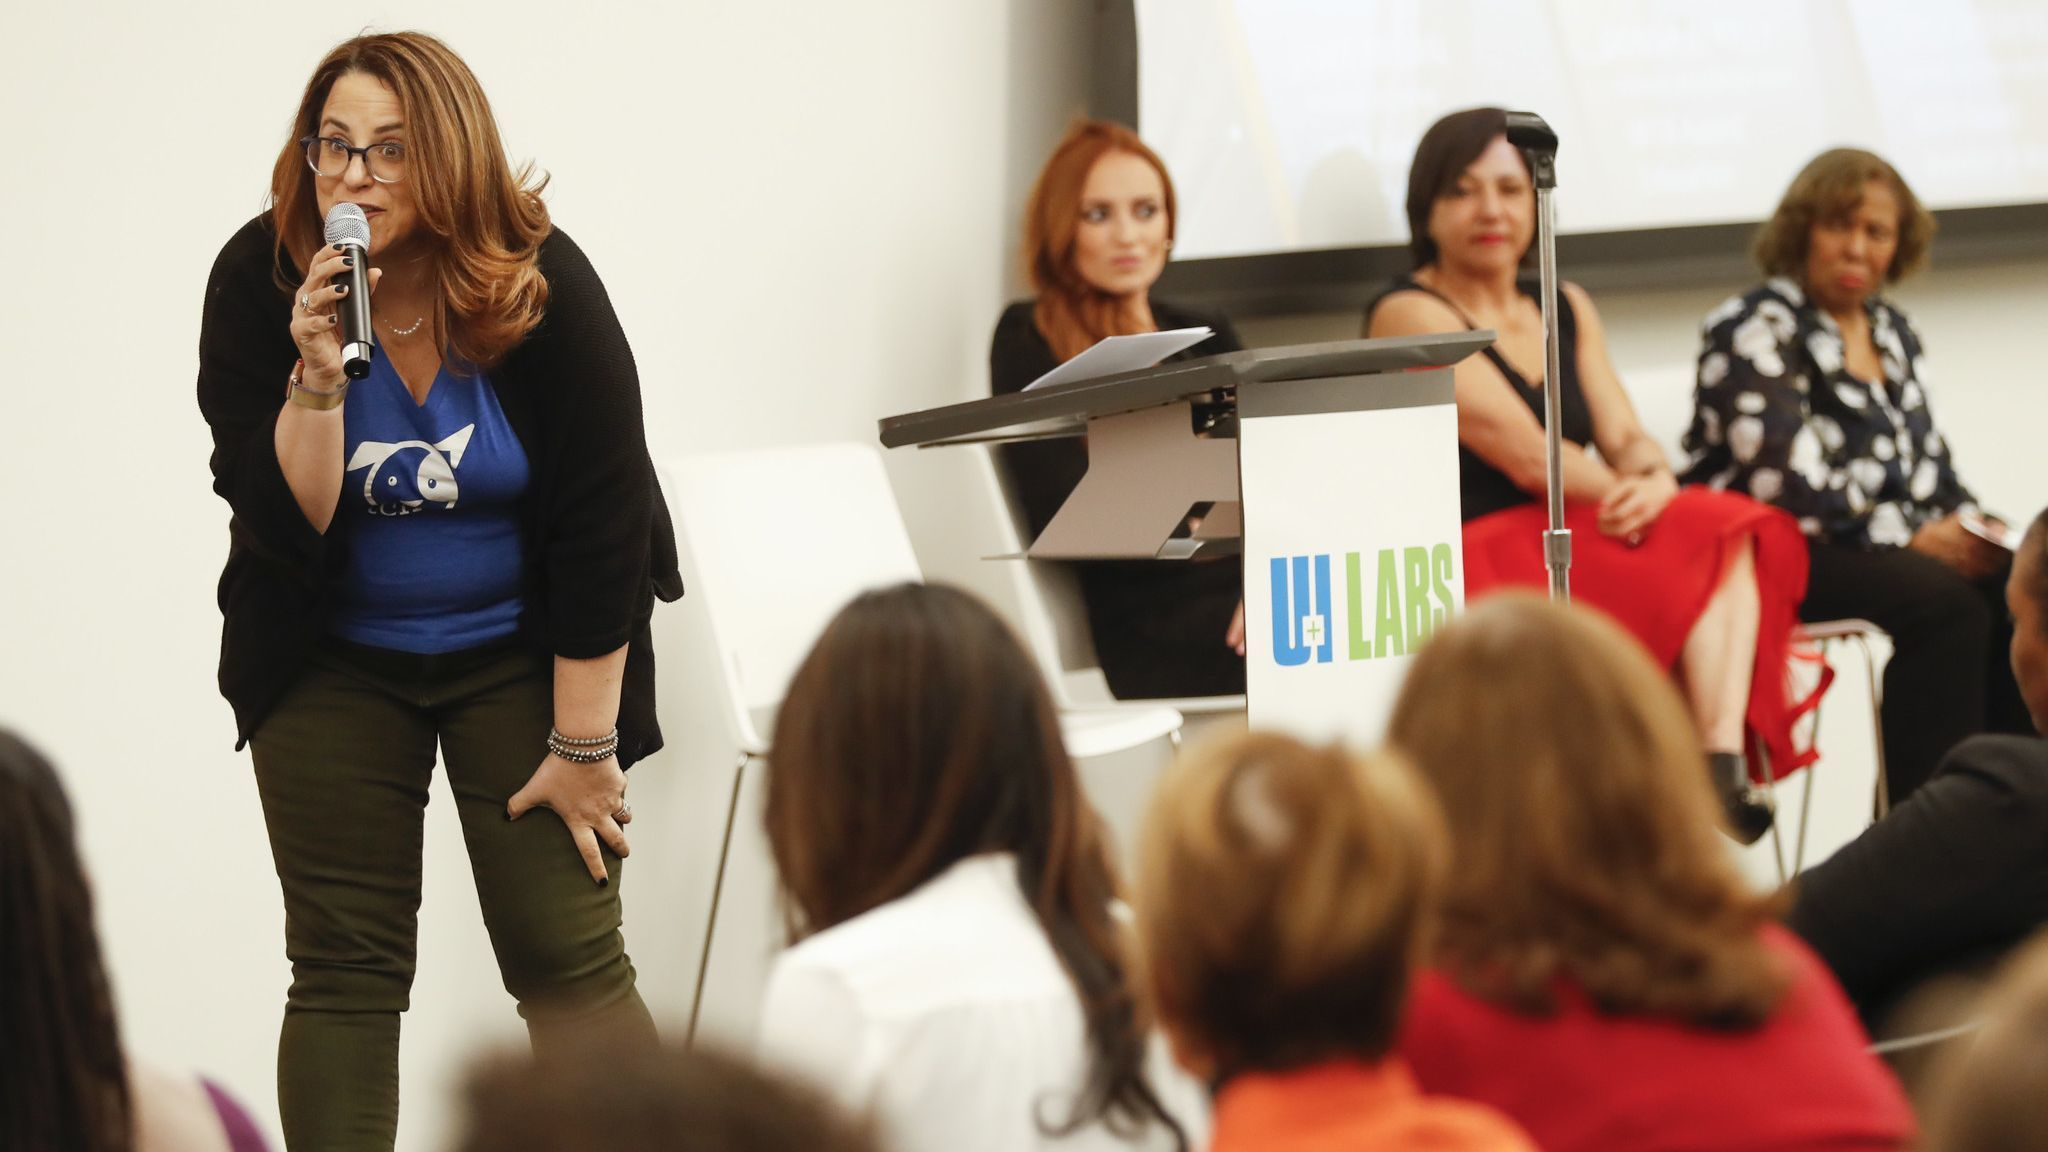 Chicago women in tech make gains in overcoming 'bro fest,' and aim for leadership positions